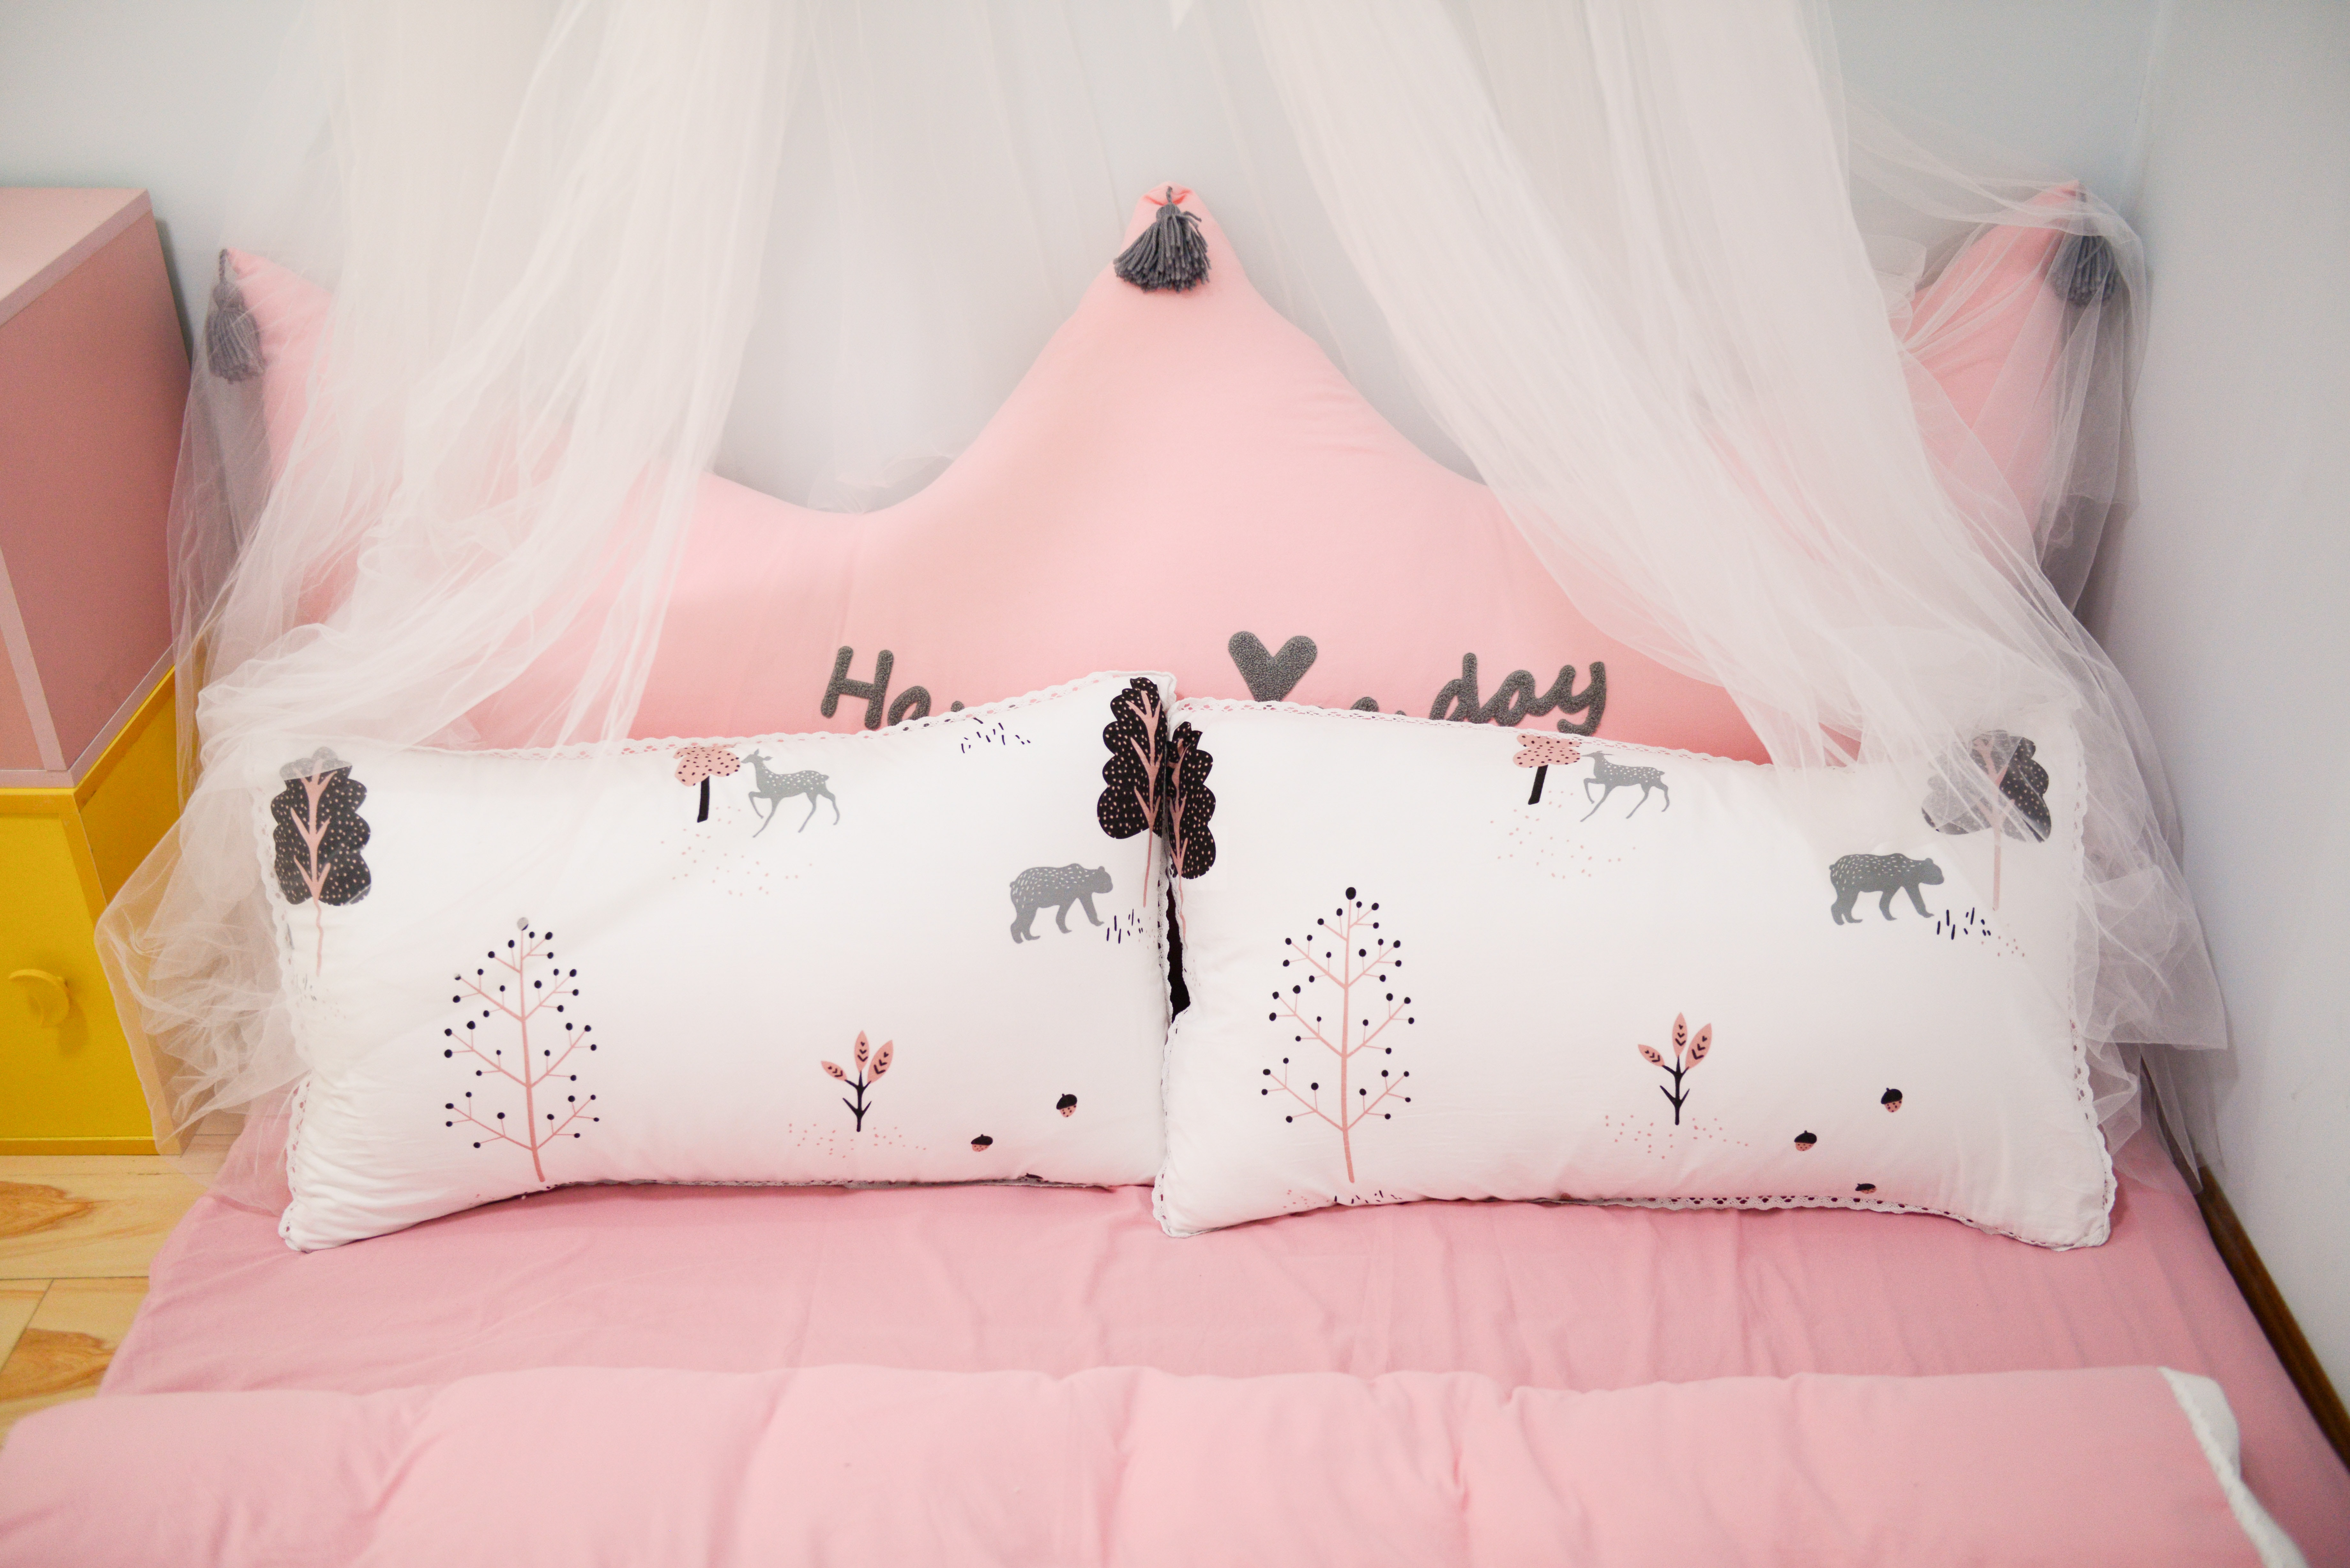 Pink bed sheets in a dorm room